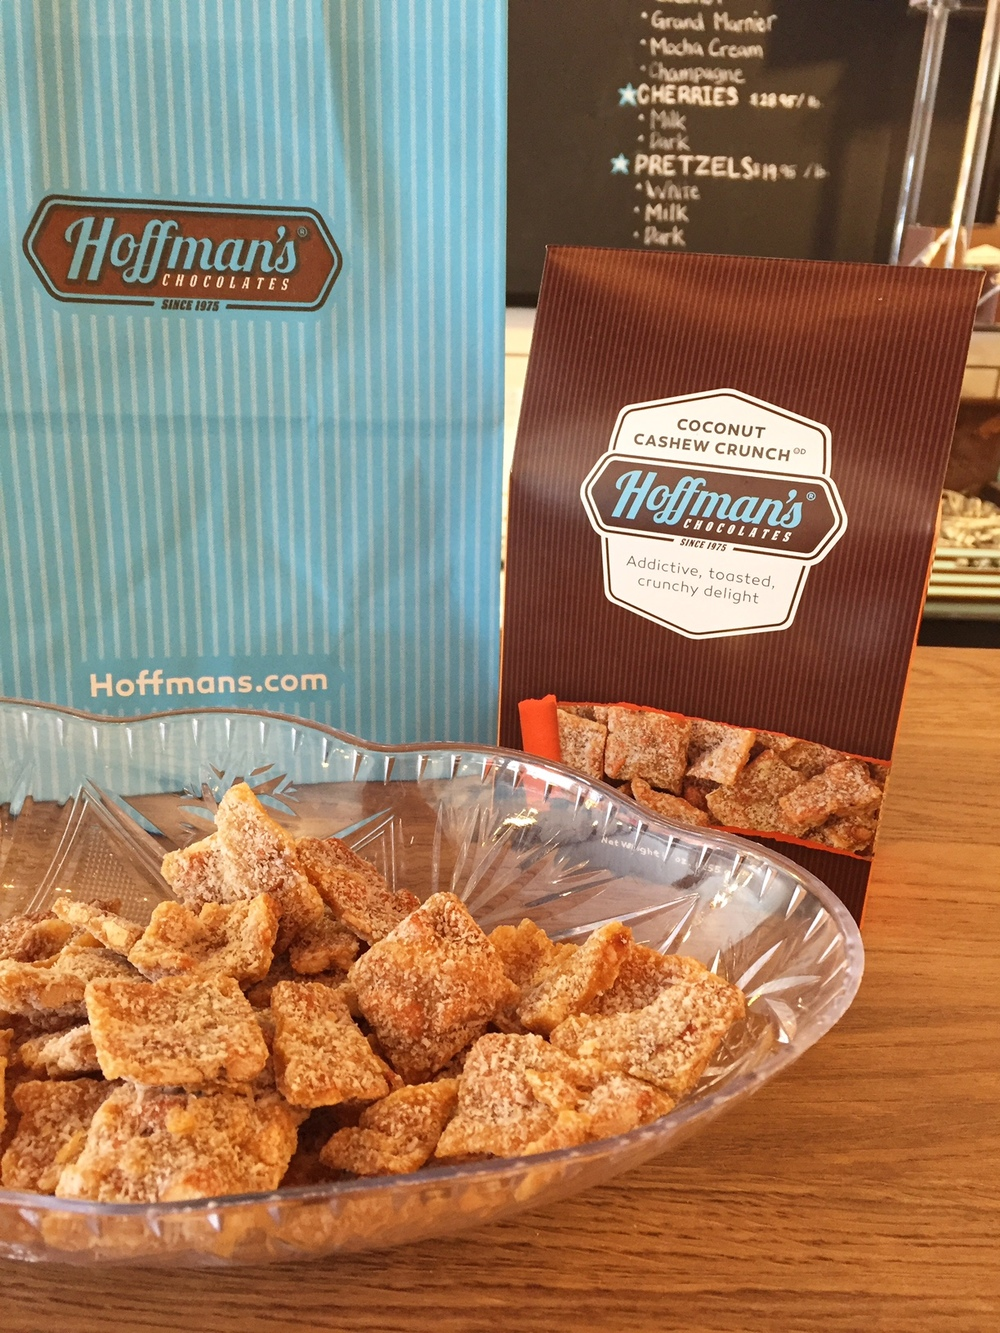 Hoffman's Chocolates Caramel Crunch